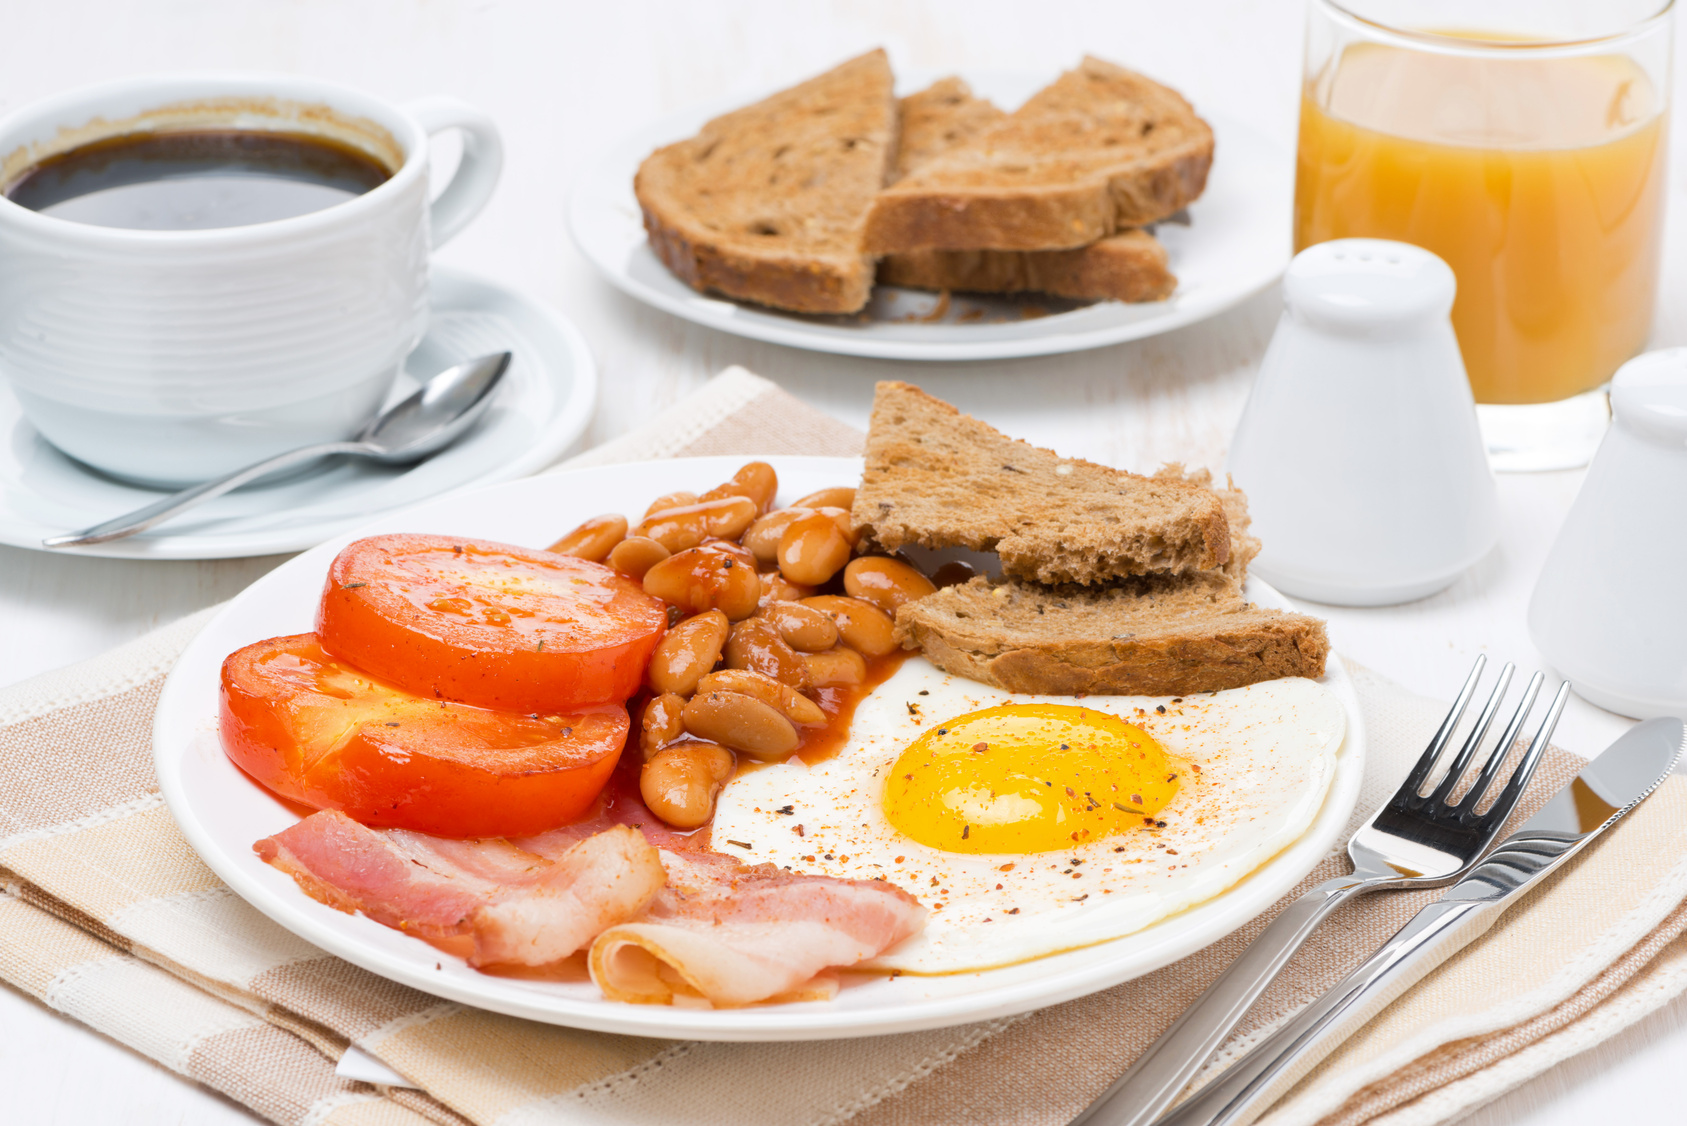 English breakfast with fried eggs, bacon and beans